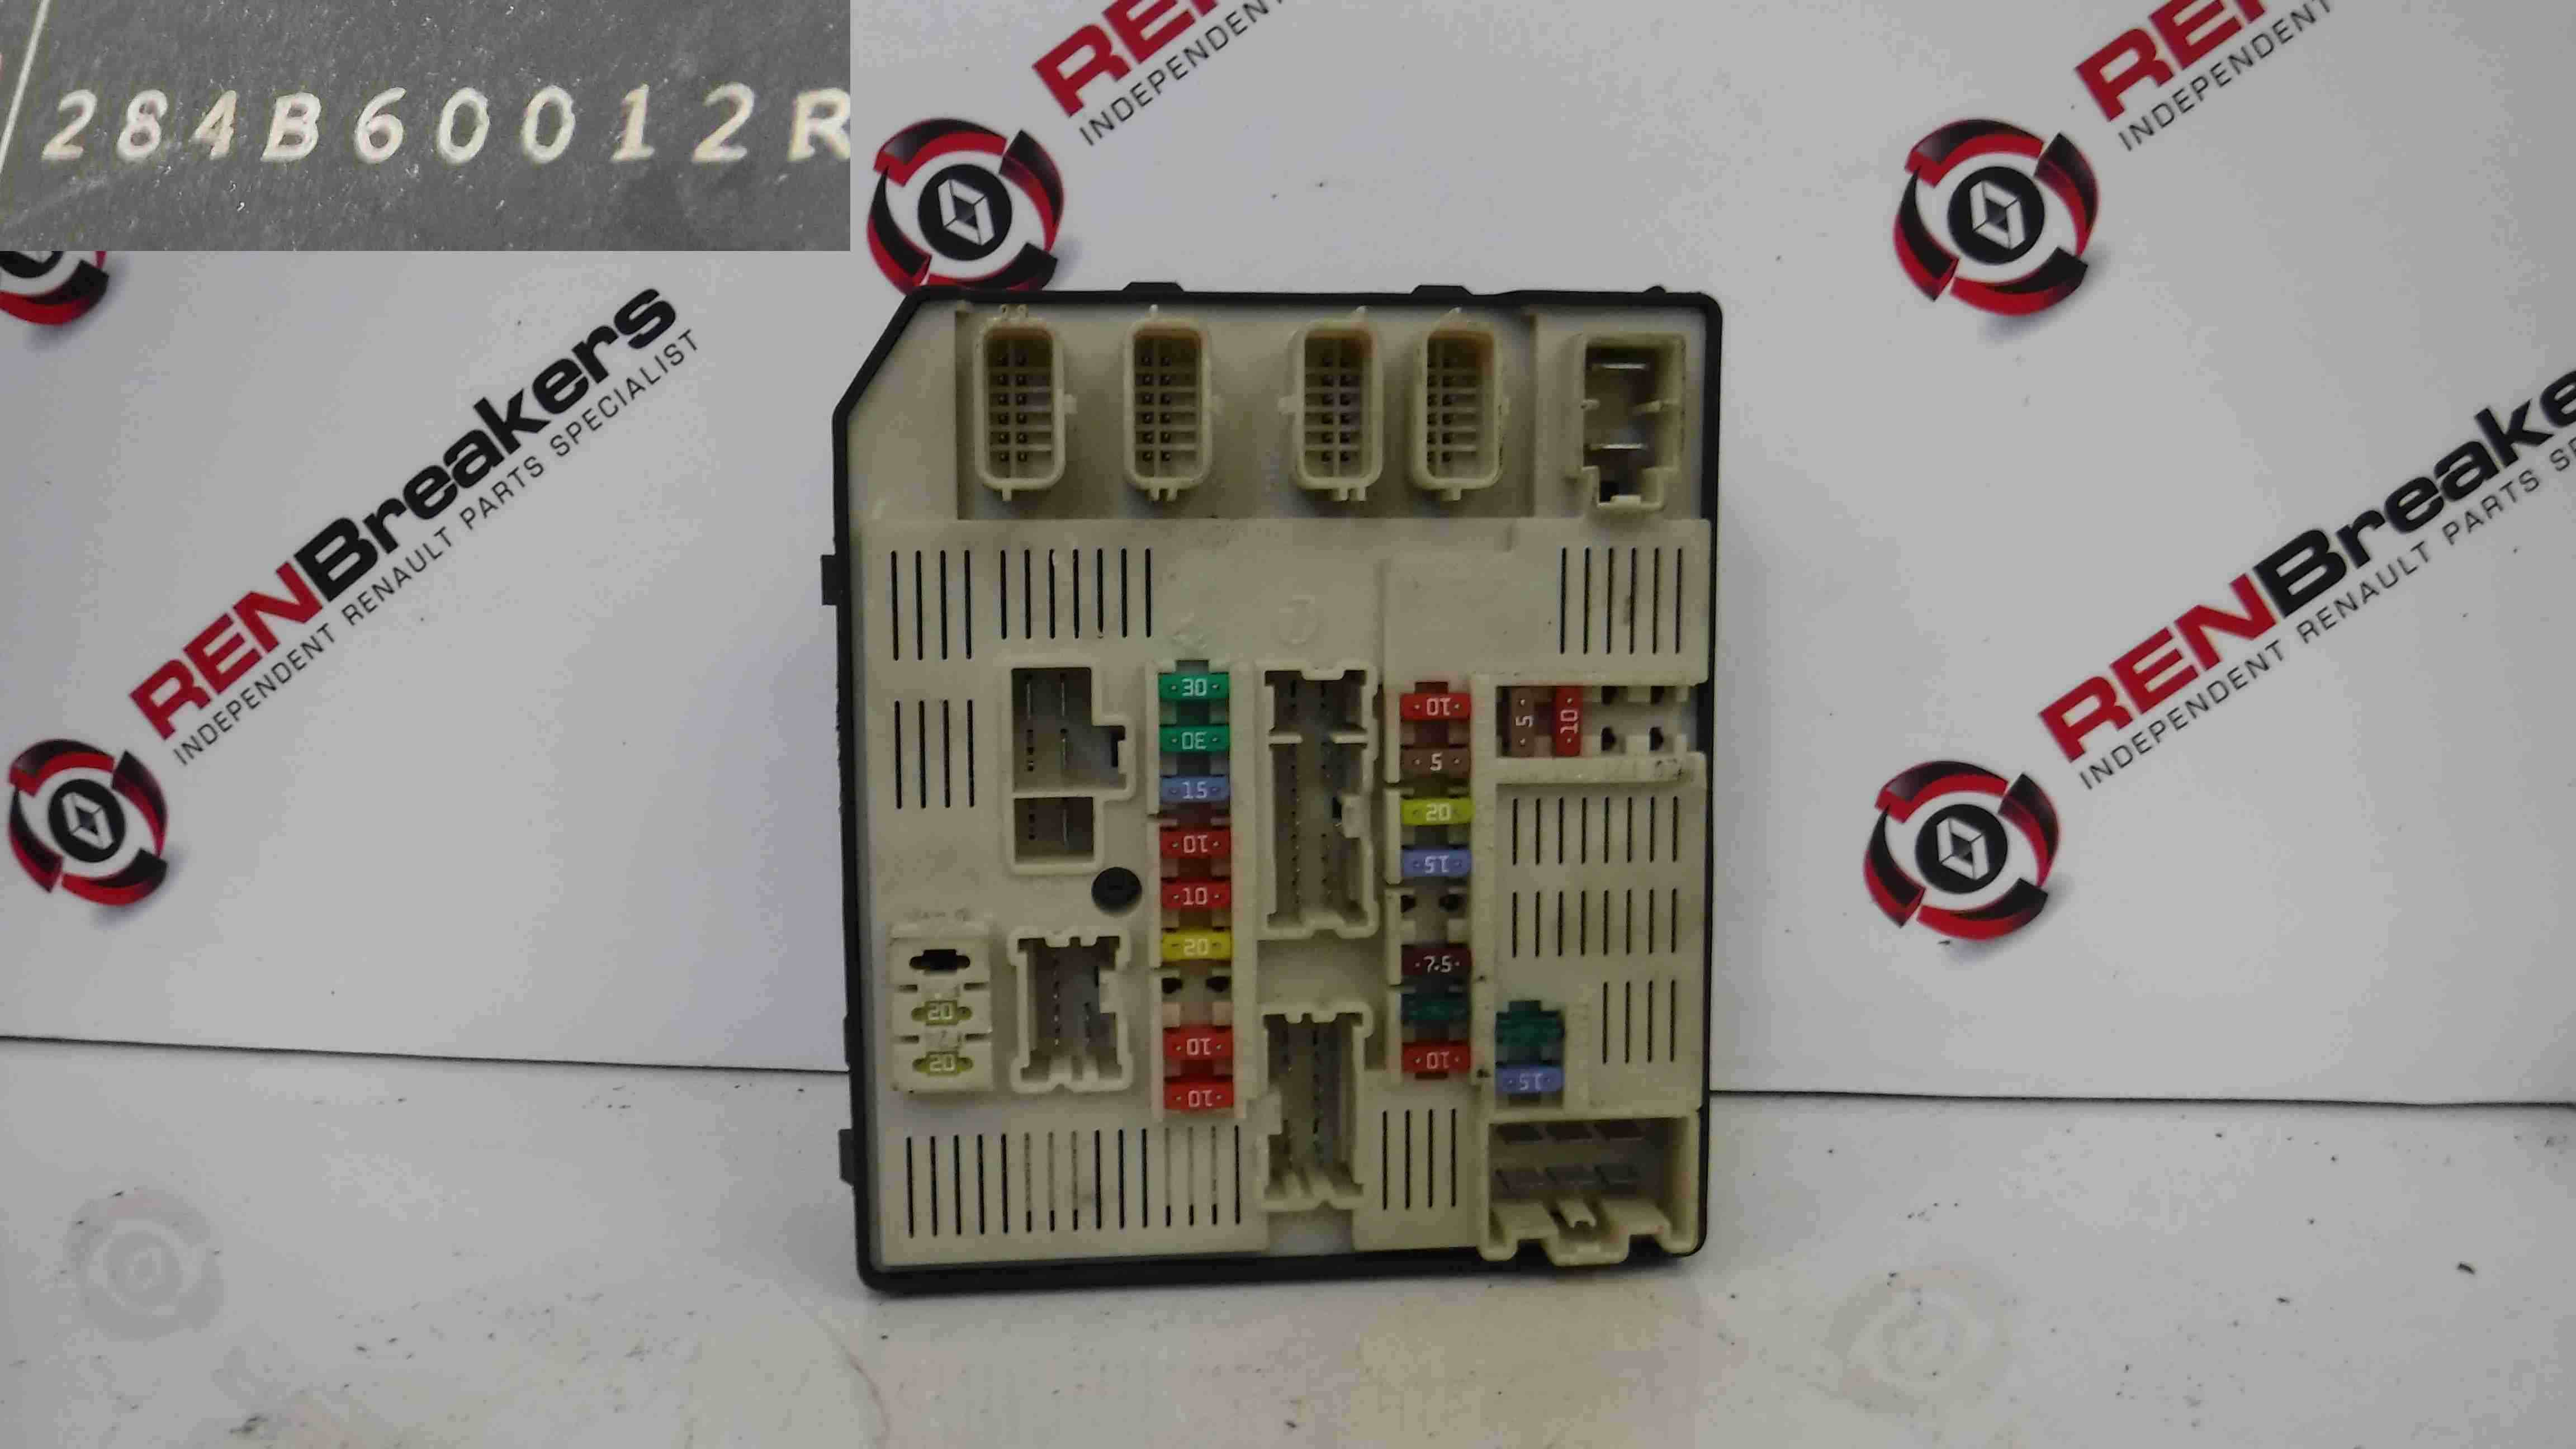 Renault-Laguna-MK3-20072012-Engine-Bay-Fuse-Box-UPC-284B60012r Where Is Fuse Box On Renault Grand Scenic on